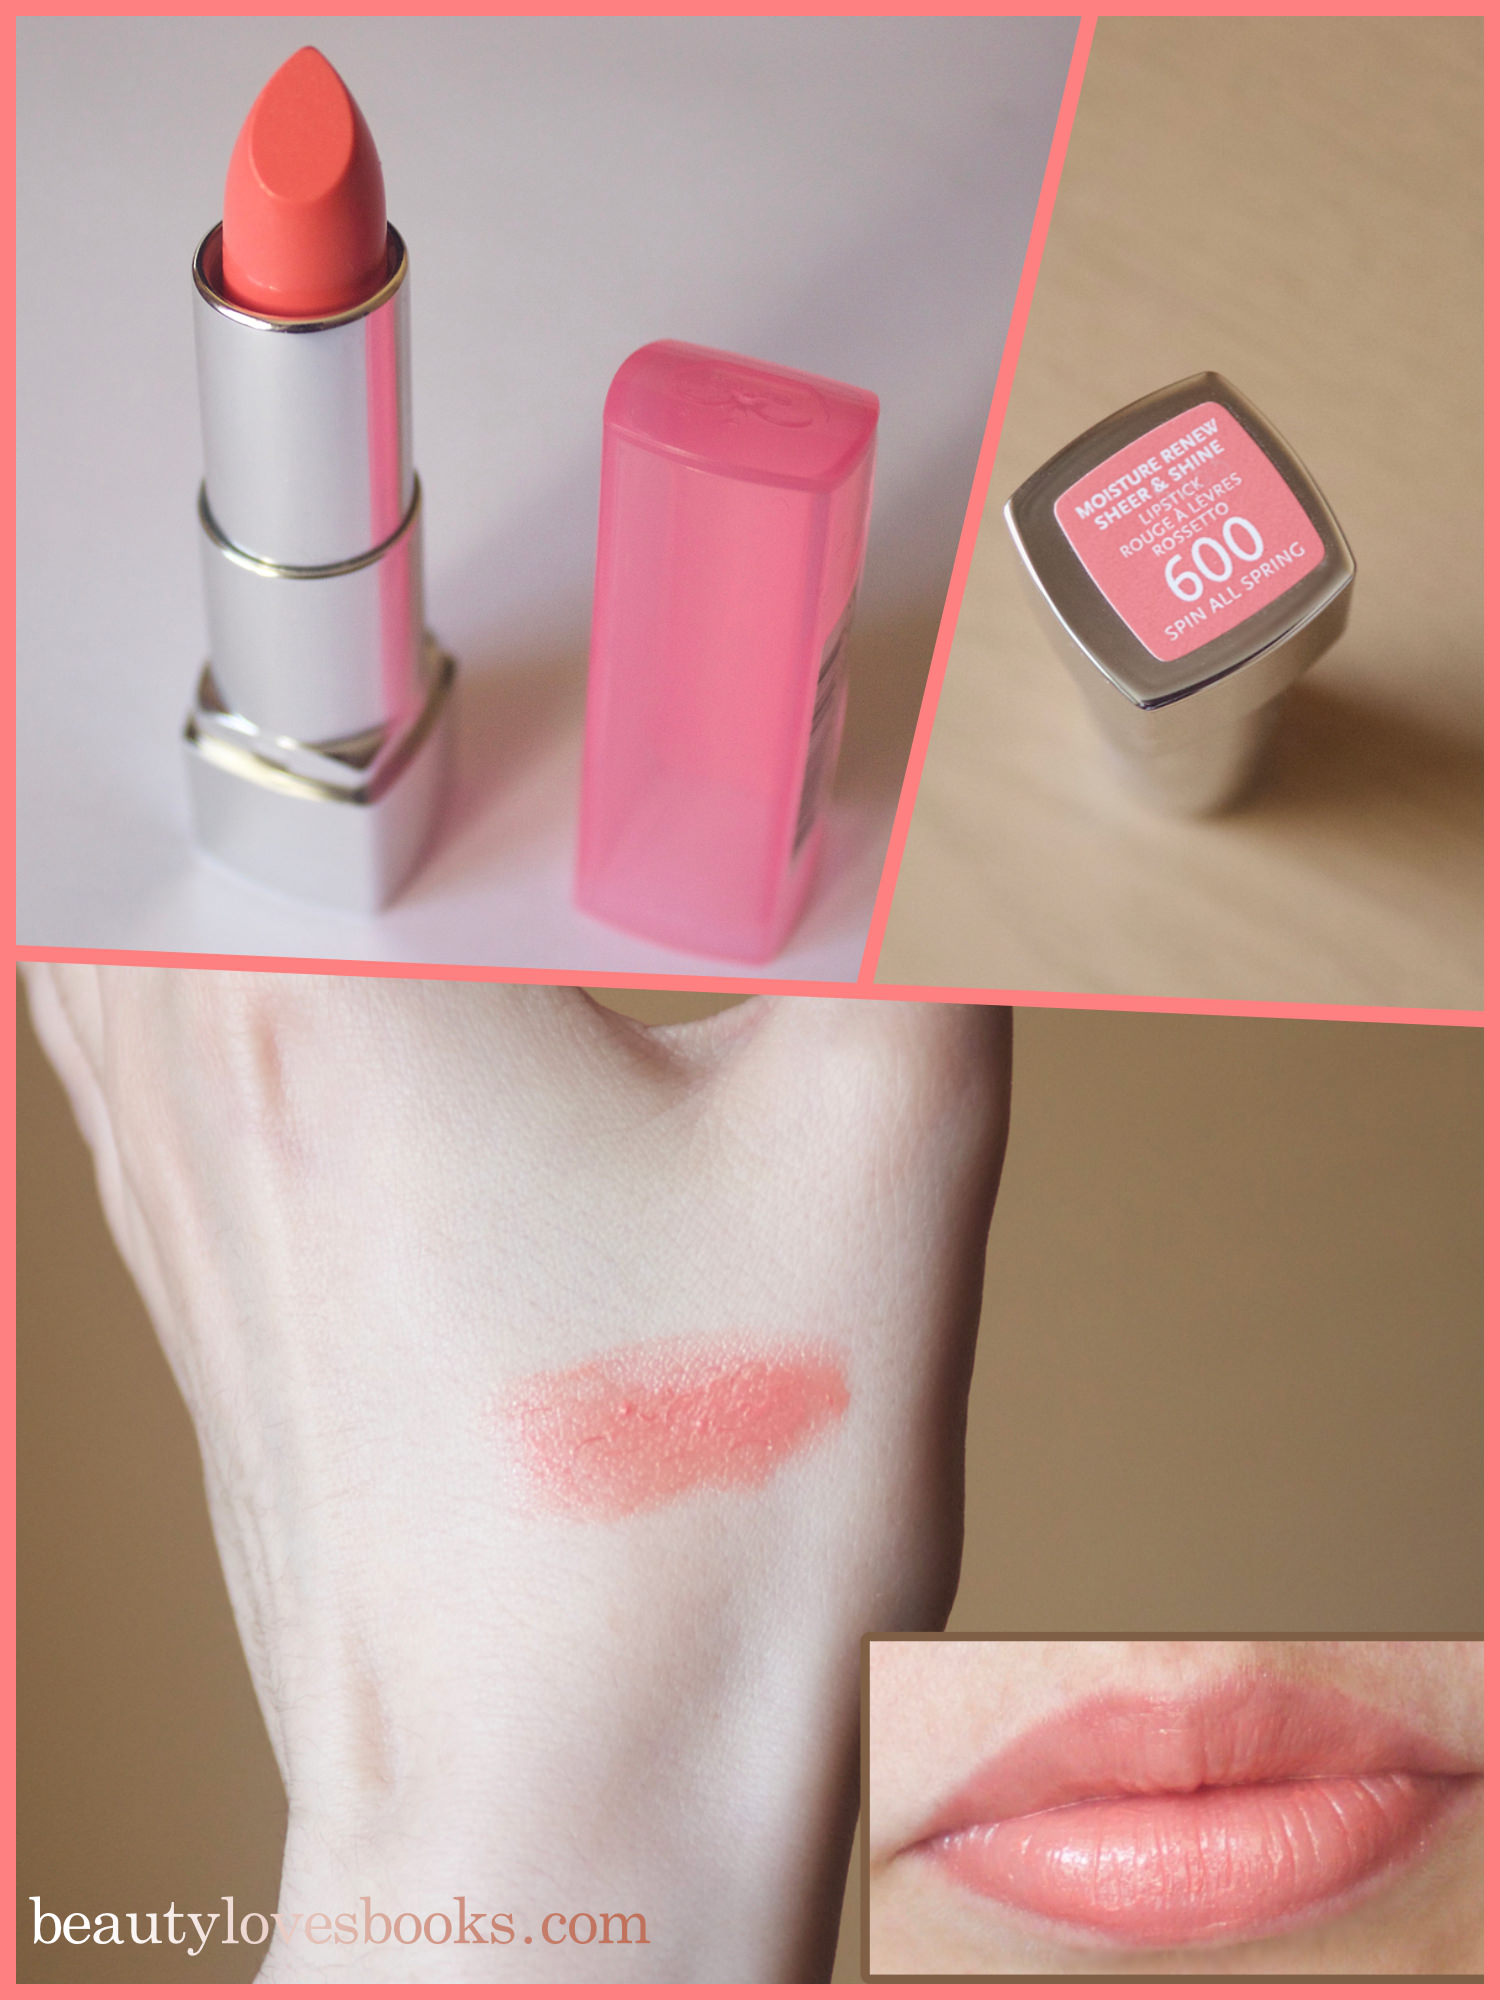 Rimmel Moisture Renew Sheer & Shine lipstick in the shade 600 Spin All Spring - сватцхес